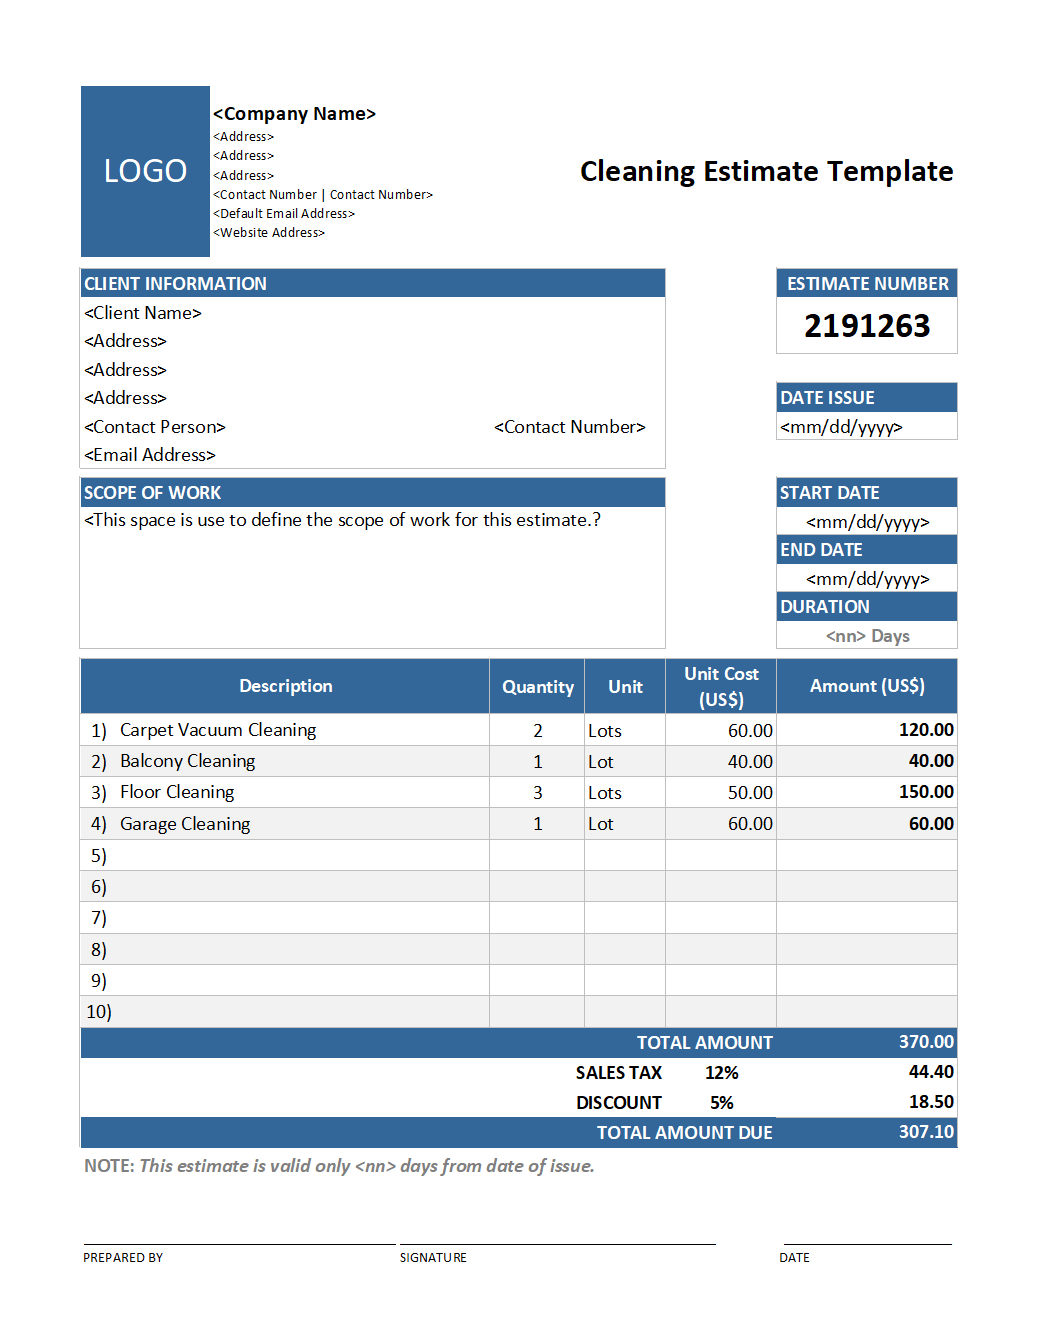 Free Cleaning Estimate Template v2